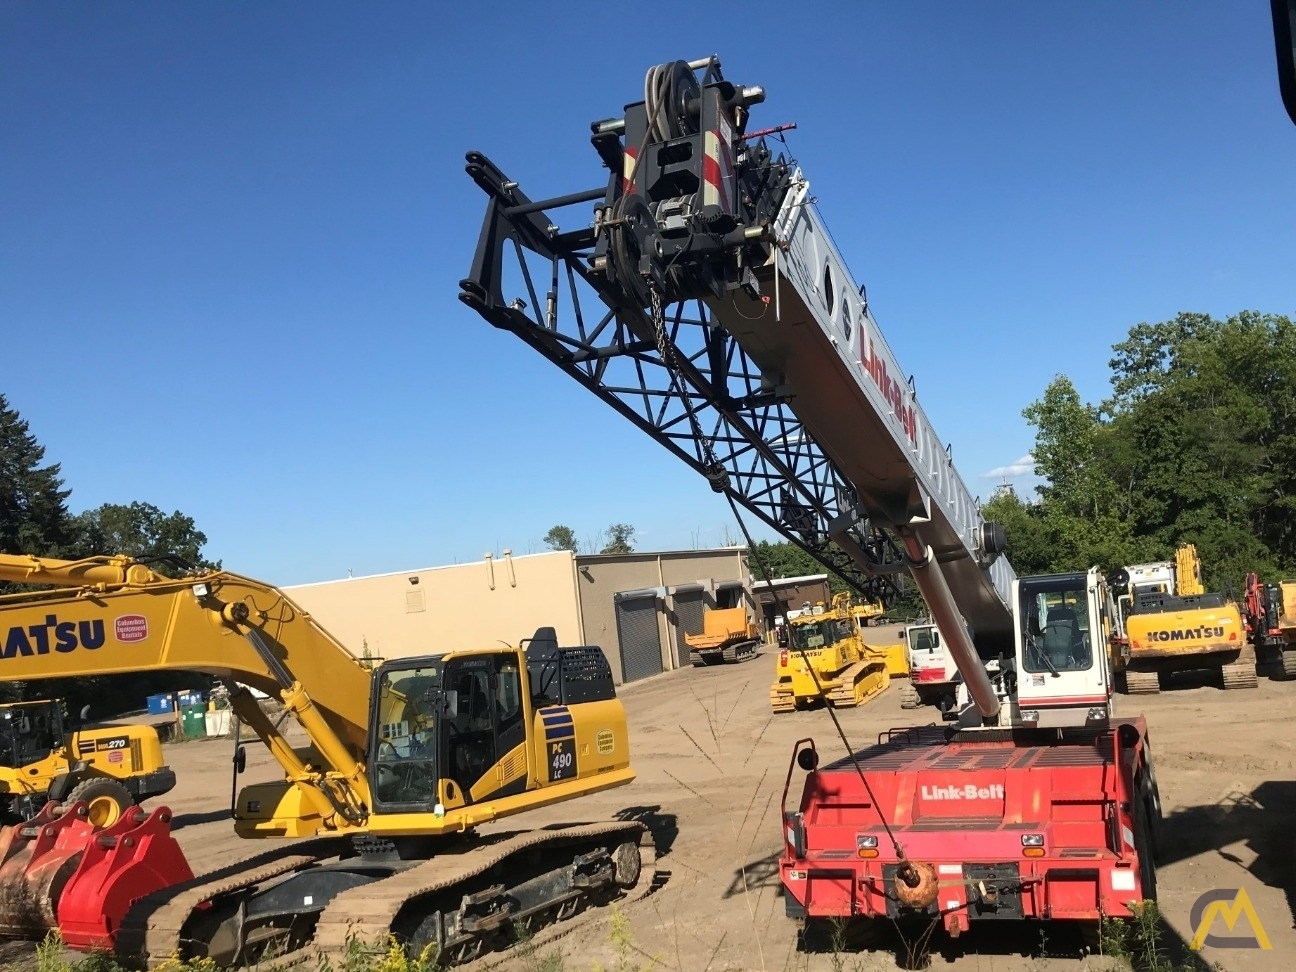 Link-Belt RTC-8050 Series II 50-ton Rough Terrain Cranes 4